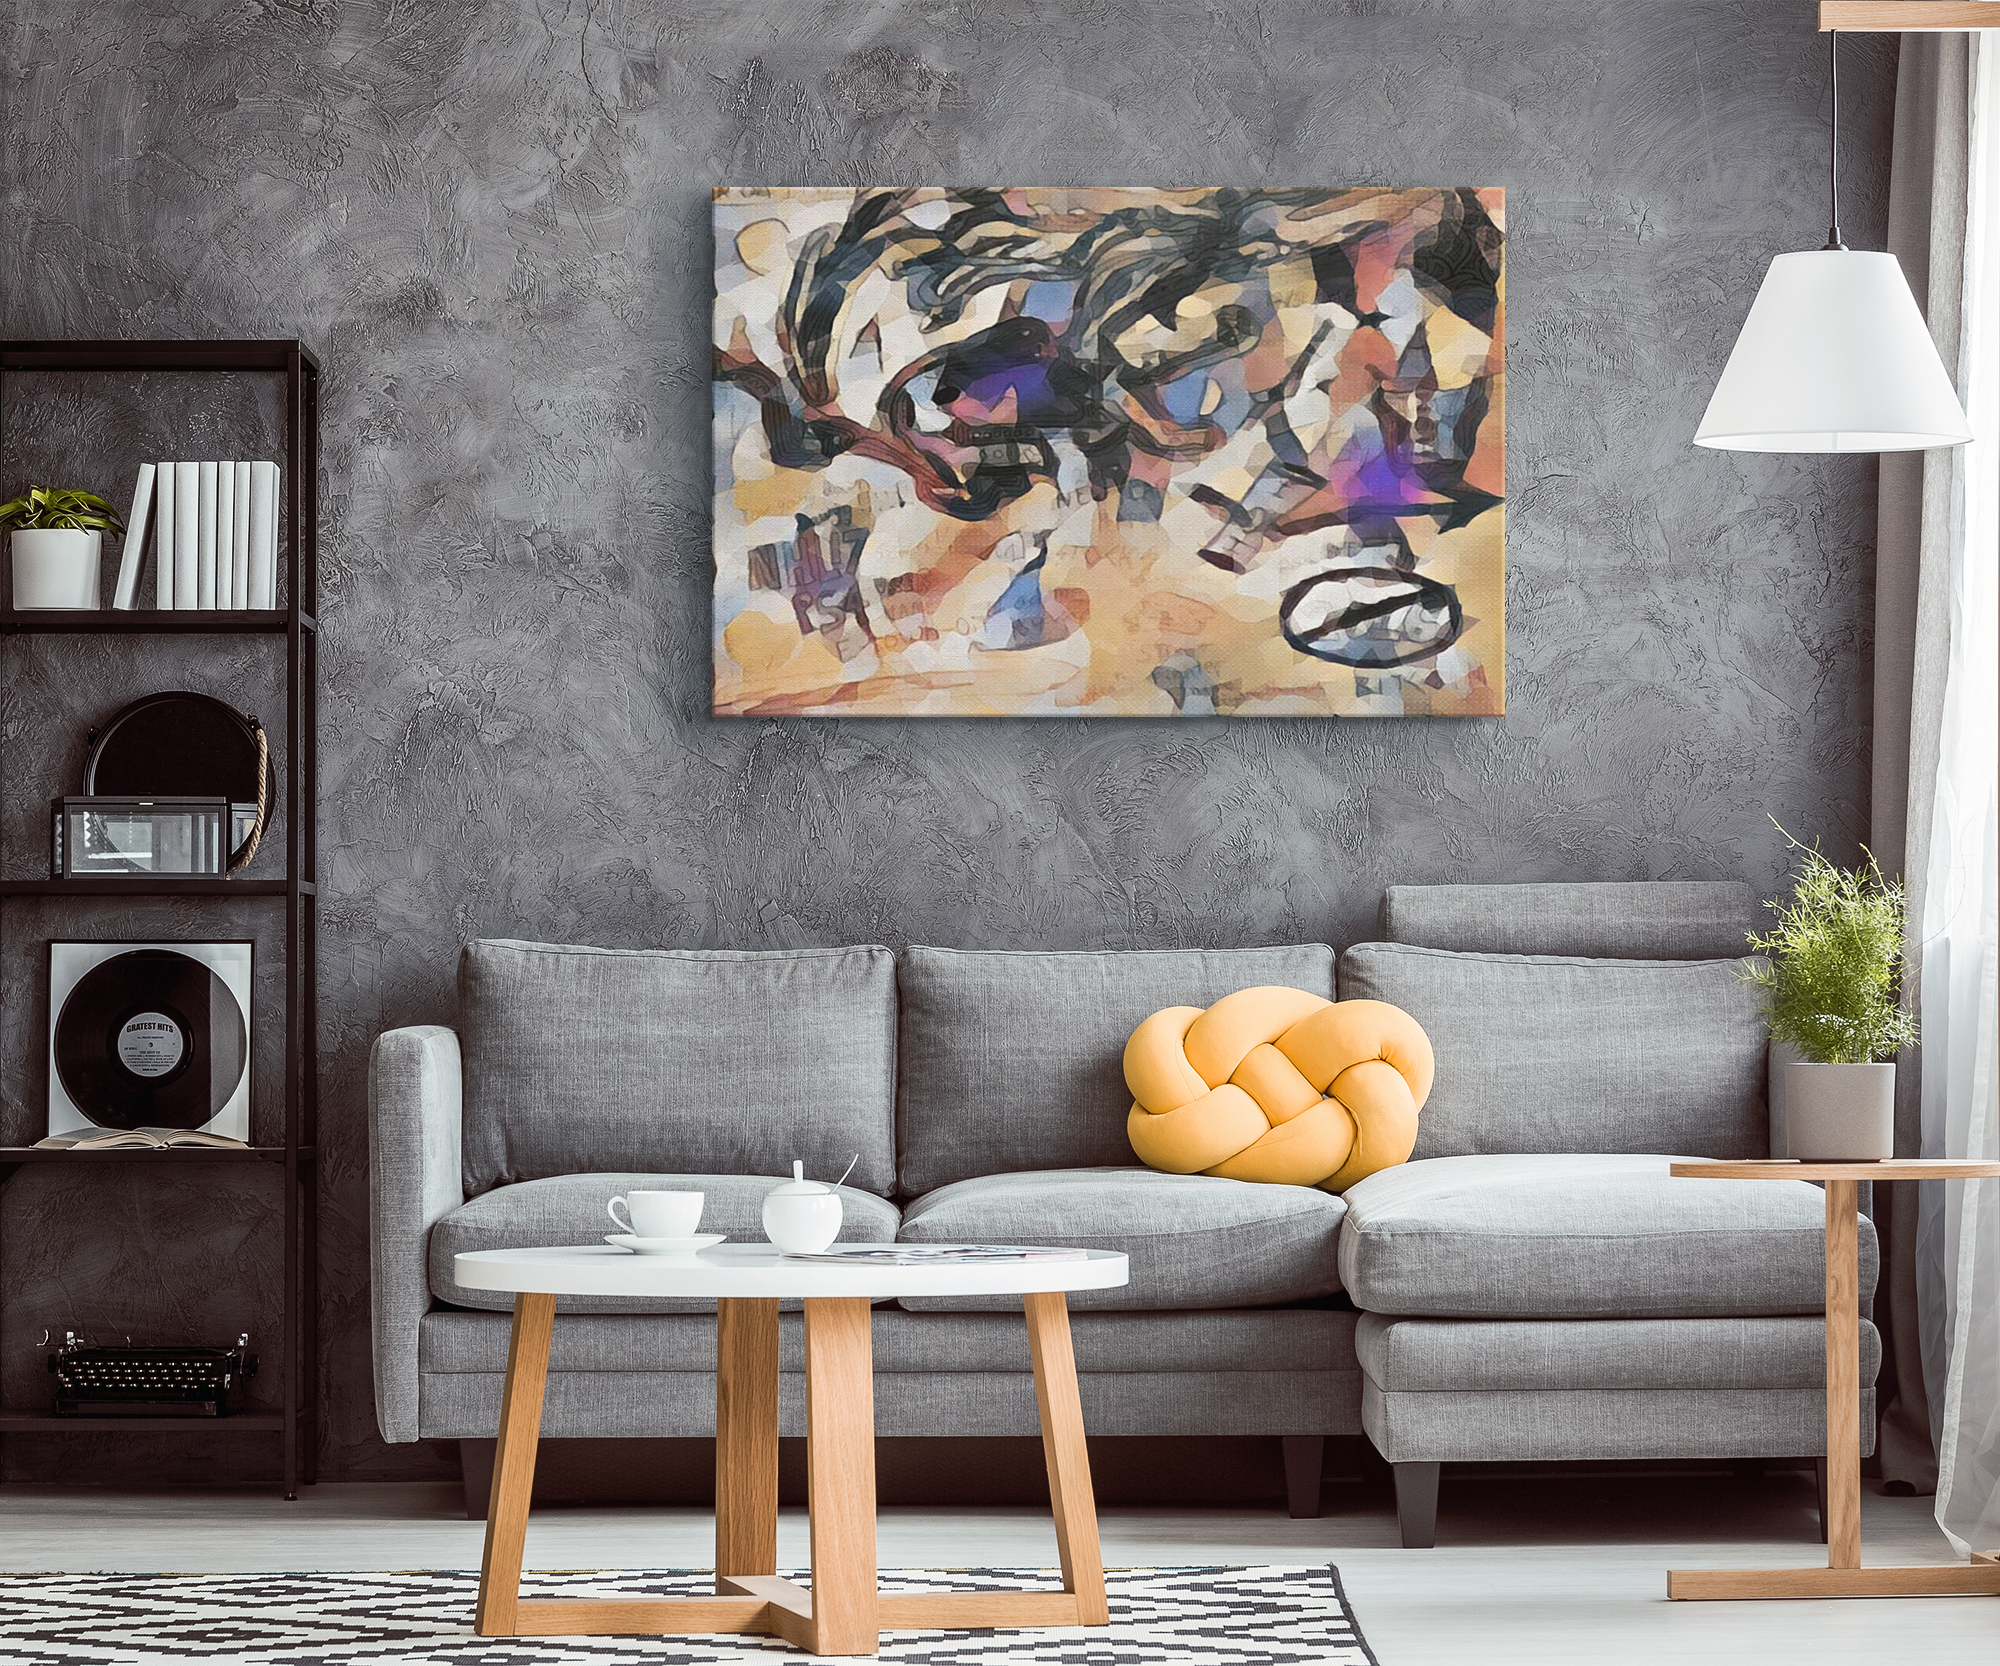 inonitself - Canvas print - designed by @remlor - Remlor Art